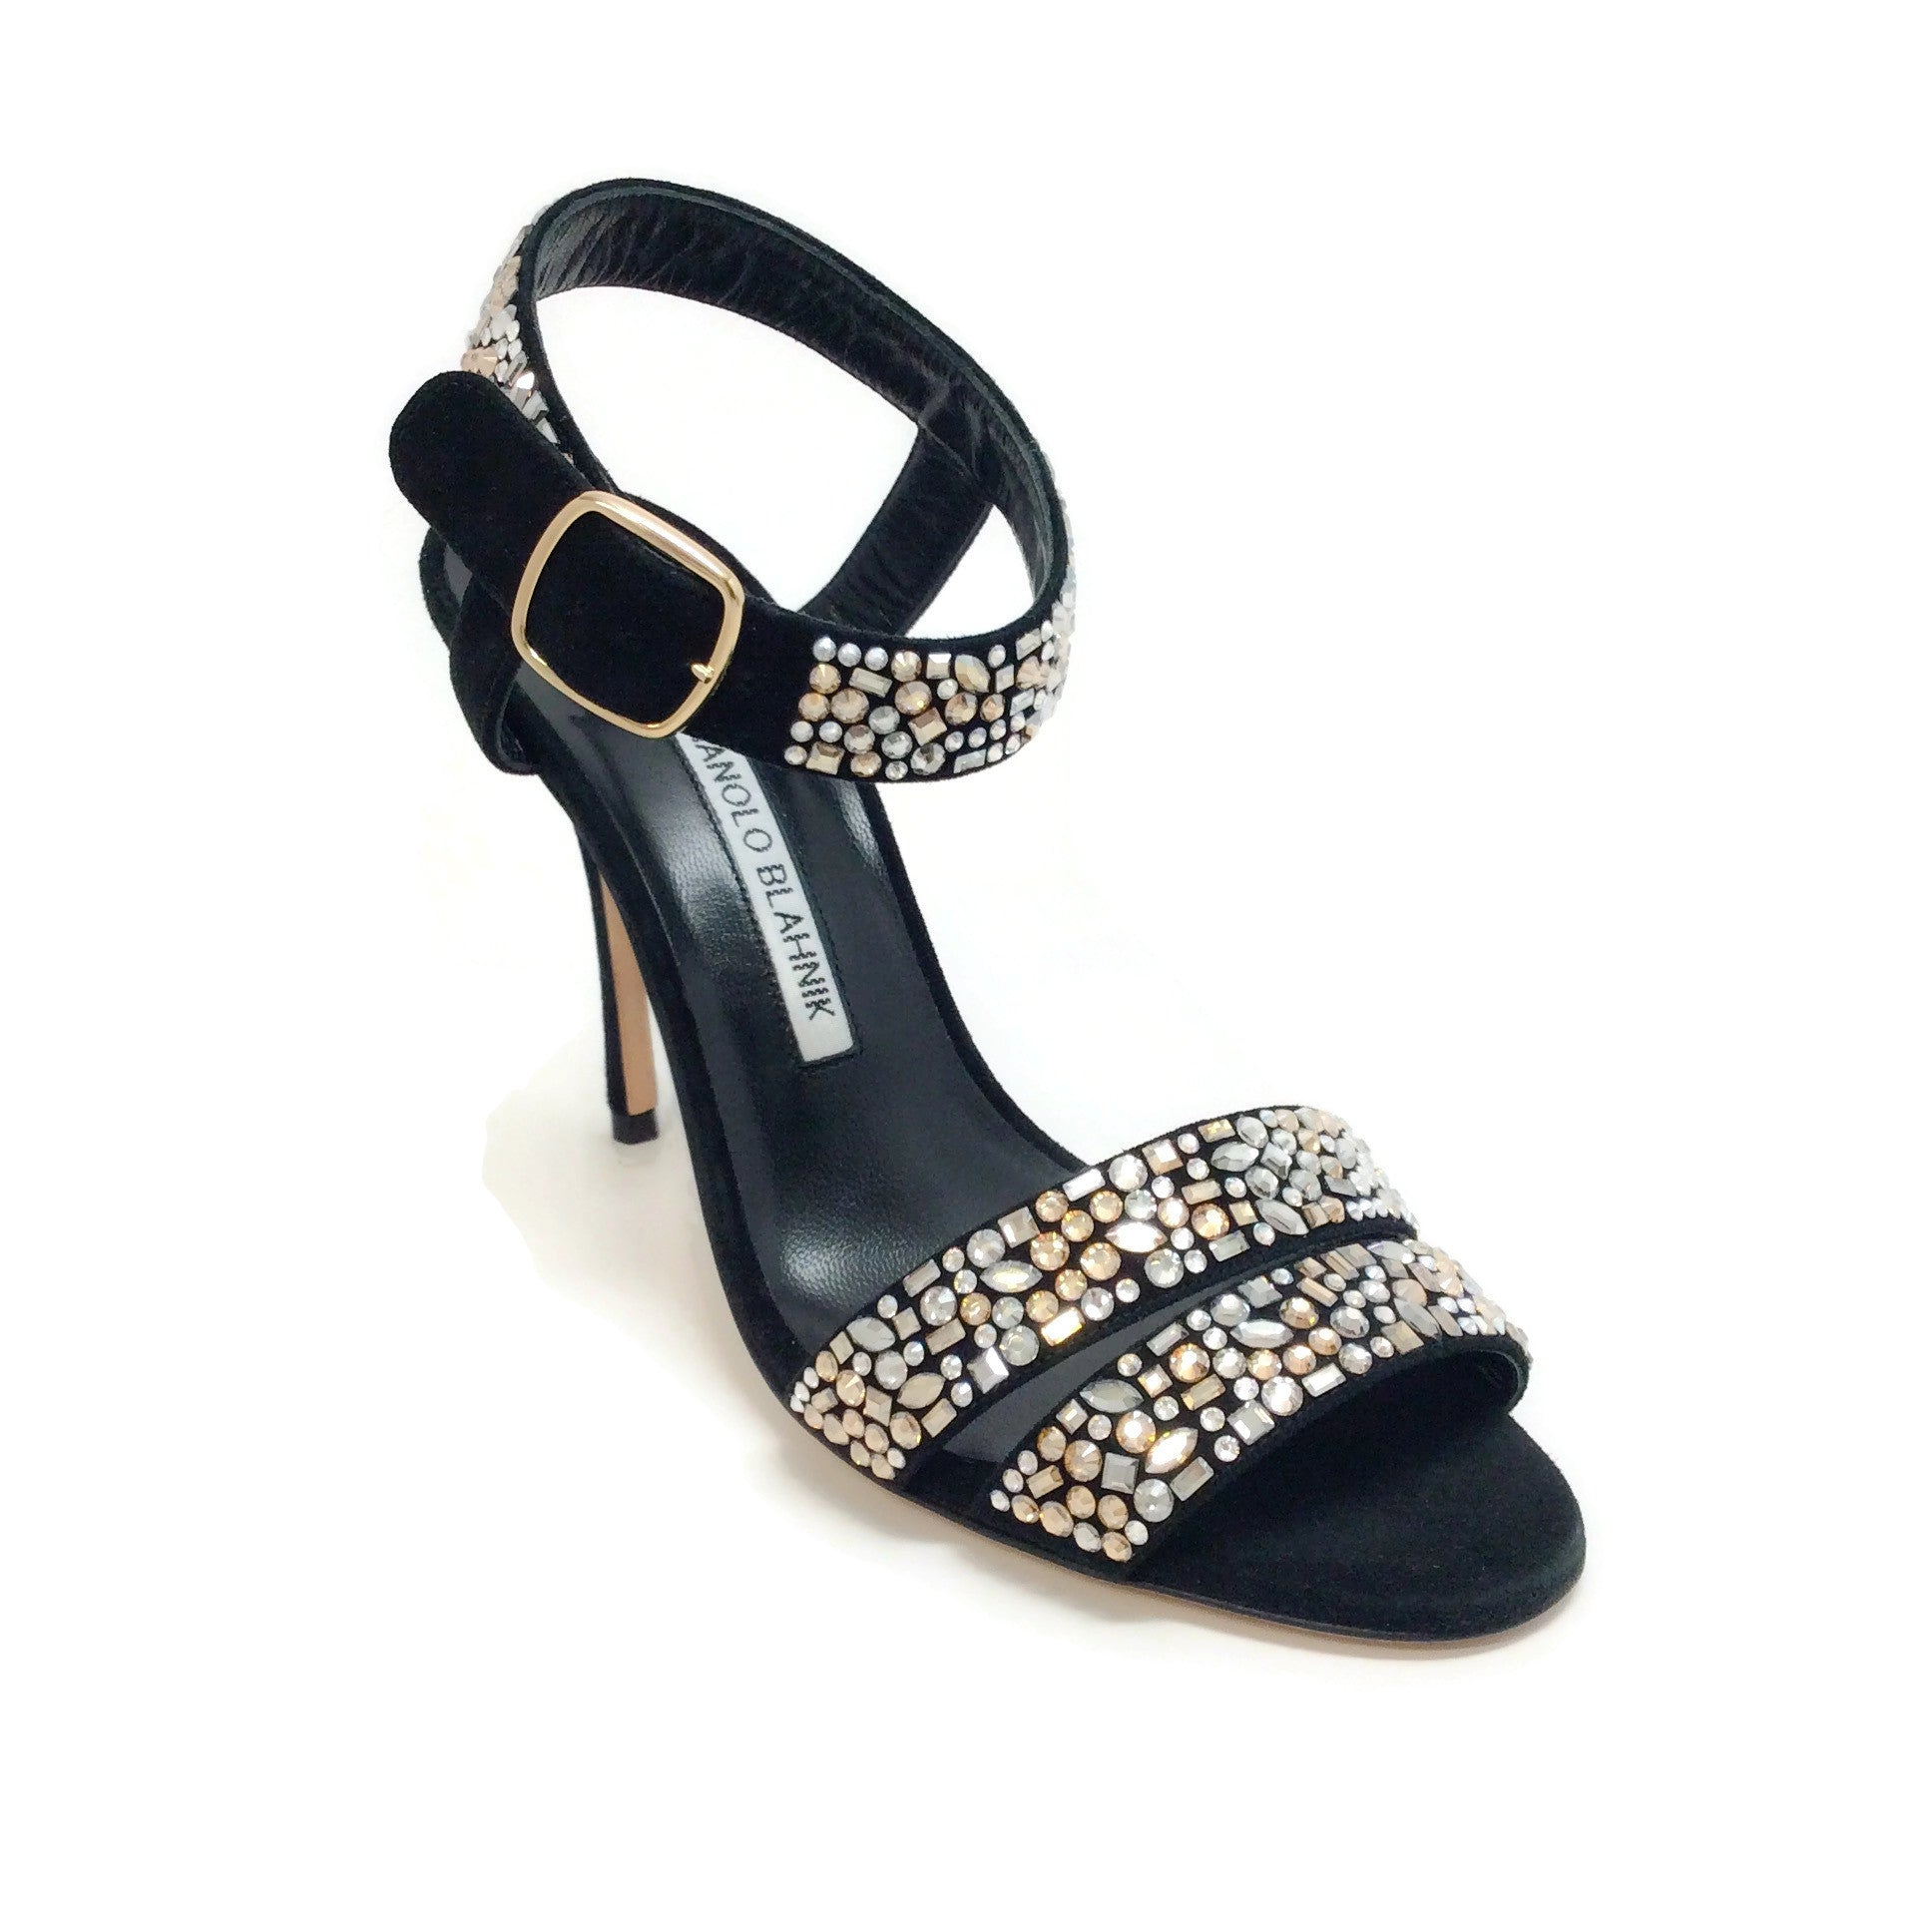 Manolo Blahnik Black with Crystals Lonia Sandals